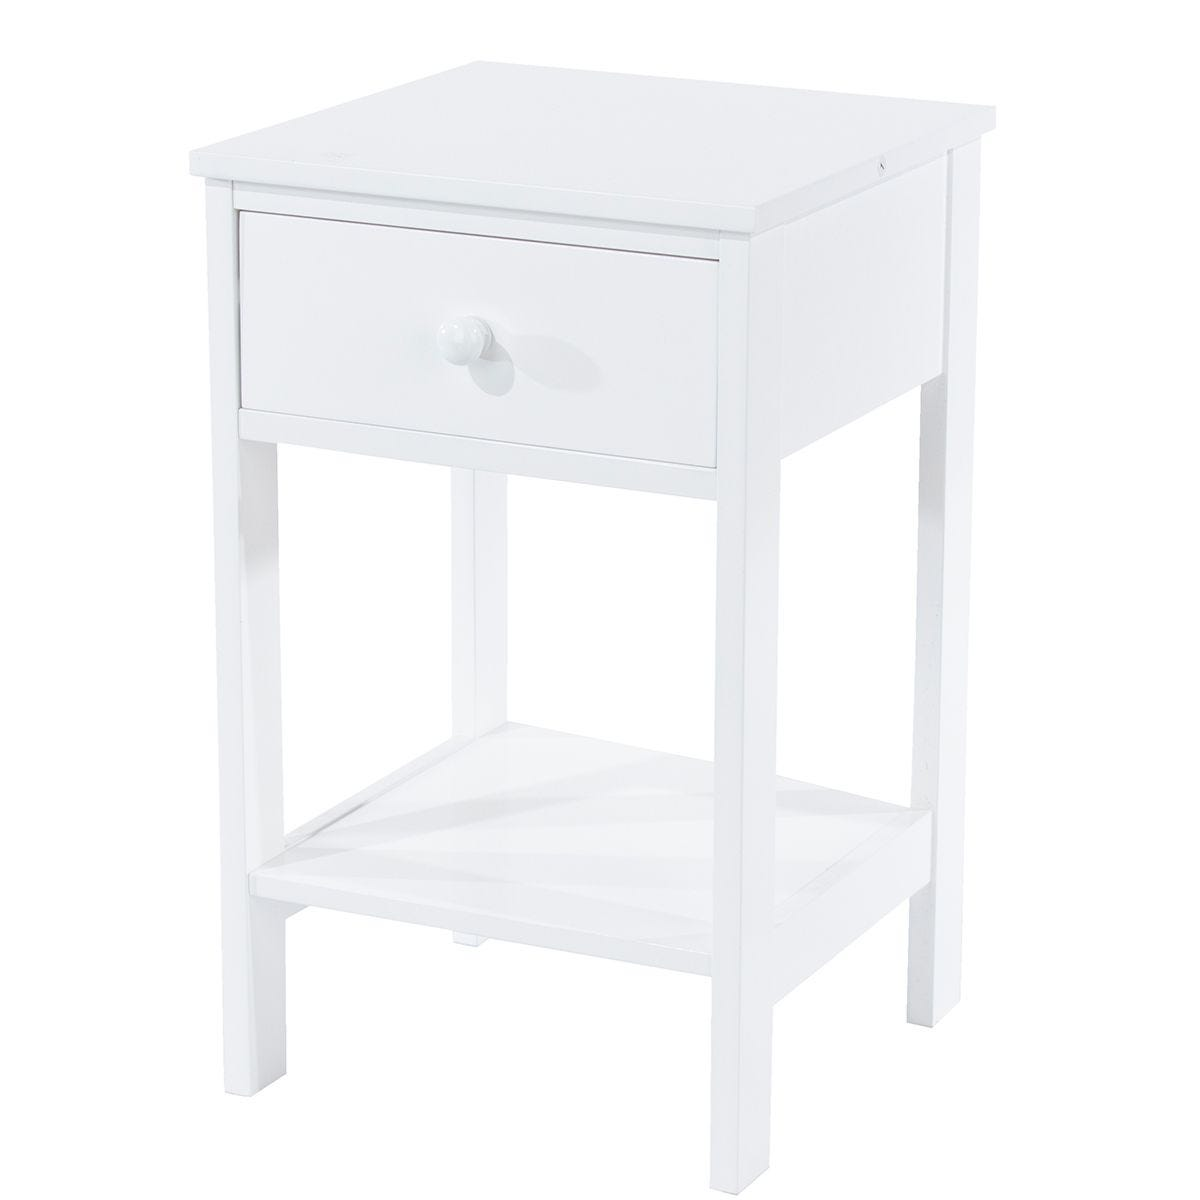 Sipla 1 Drawer Petite Bedside - White